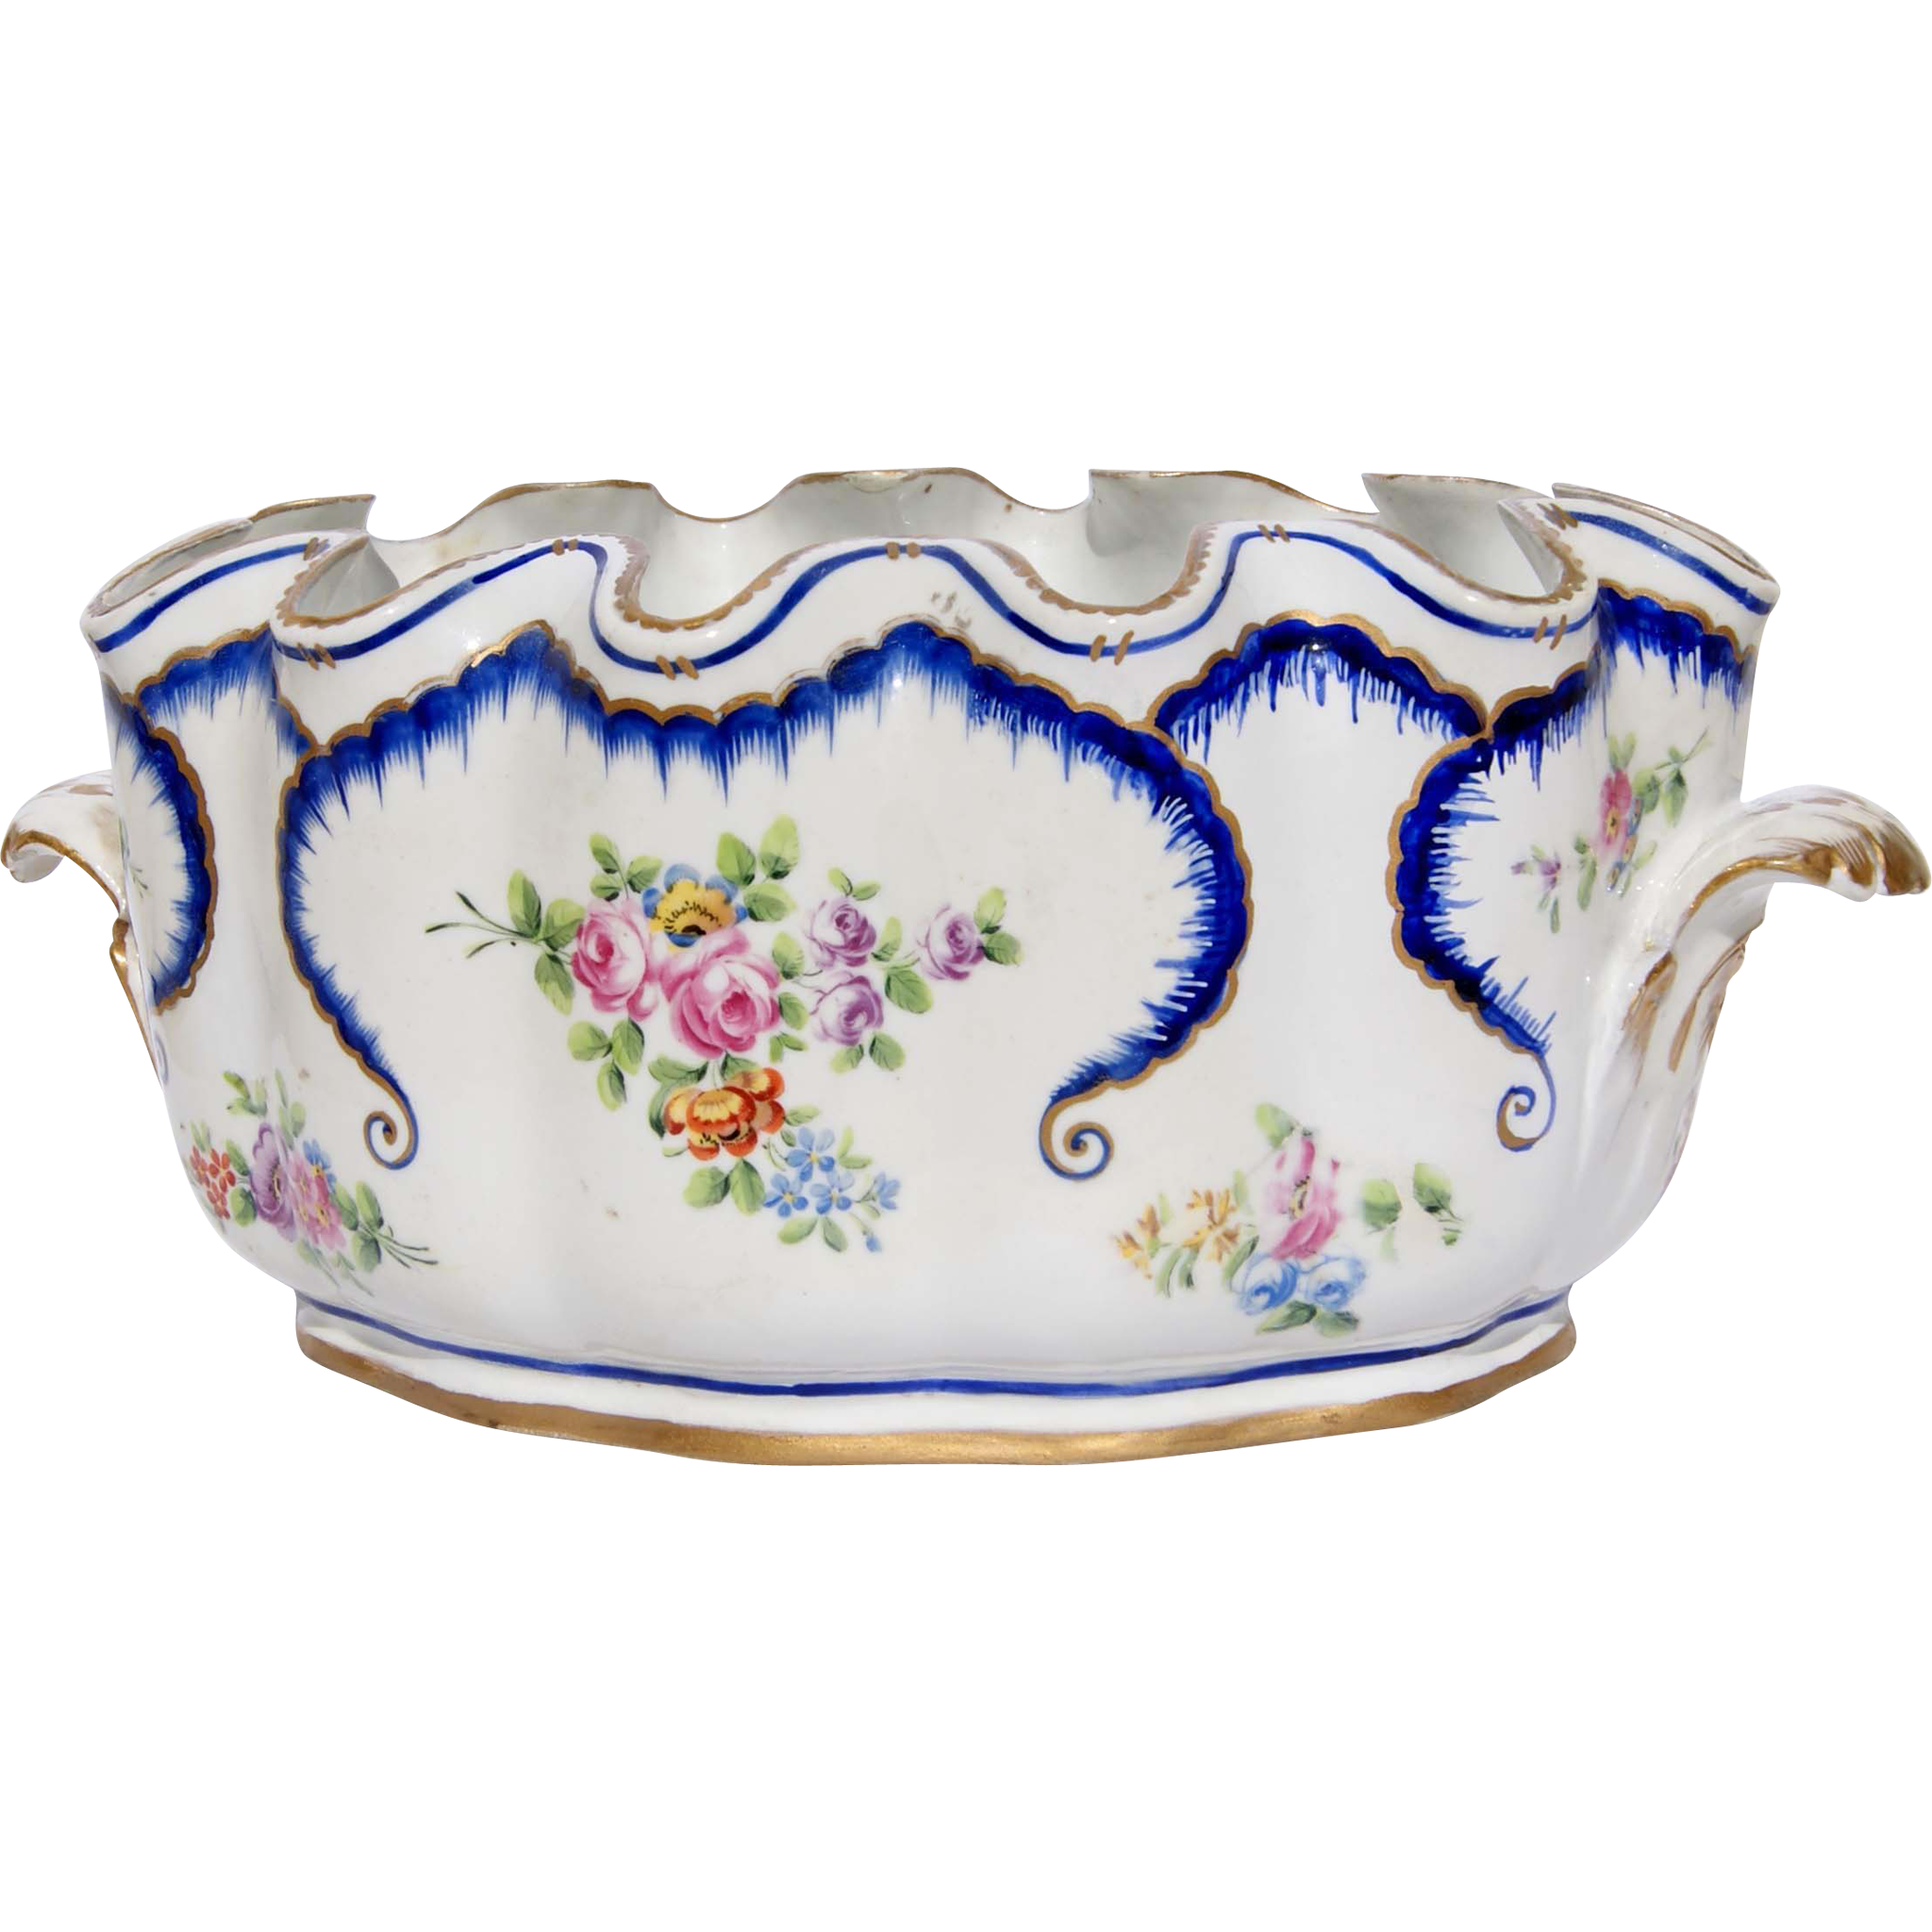 19th Century French Porcelain Scalloped Edged Bowl from